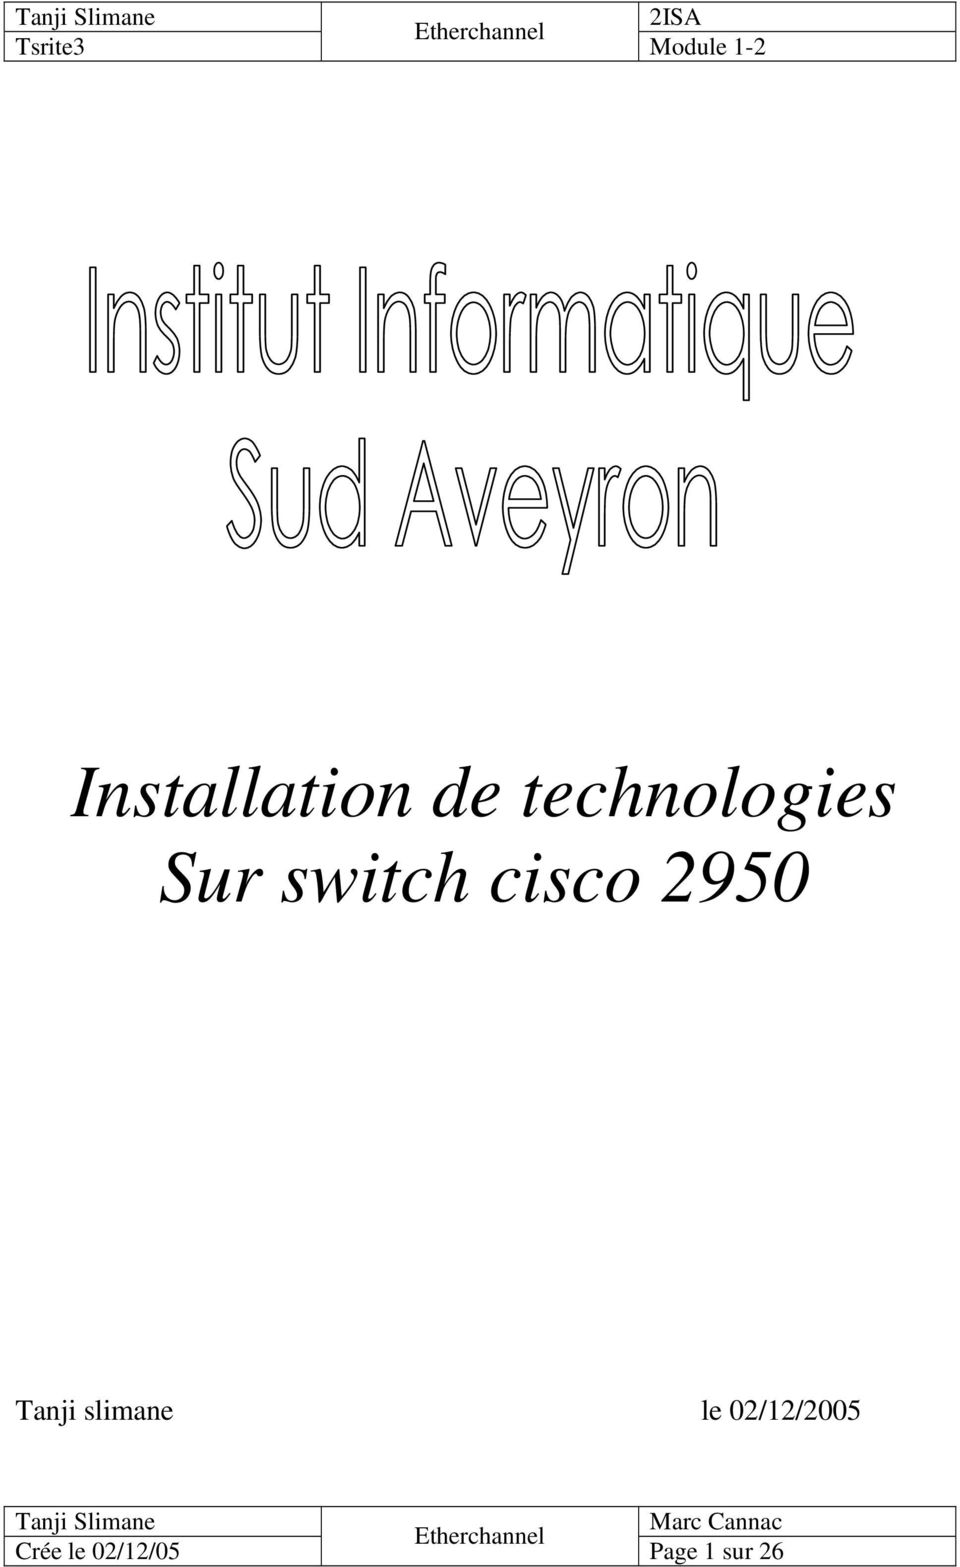 switch cisco 2950